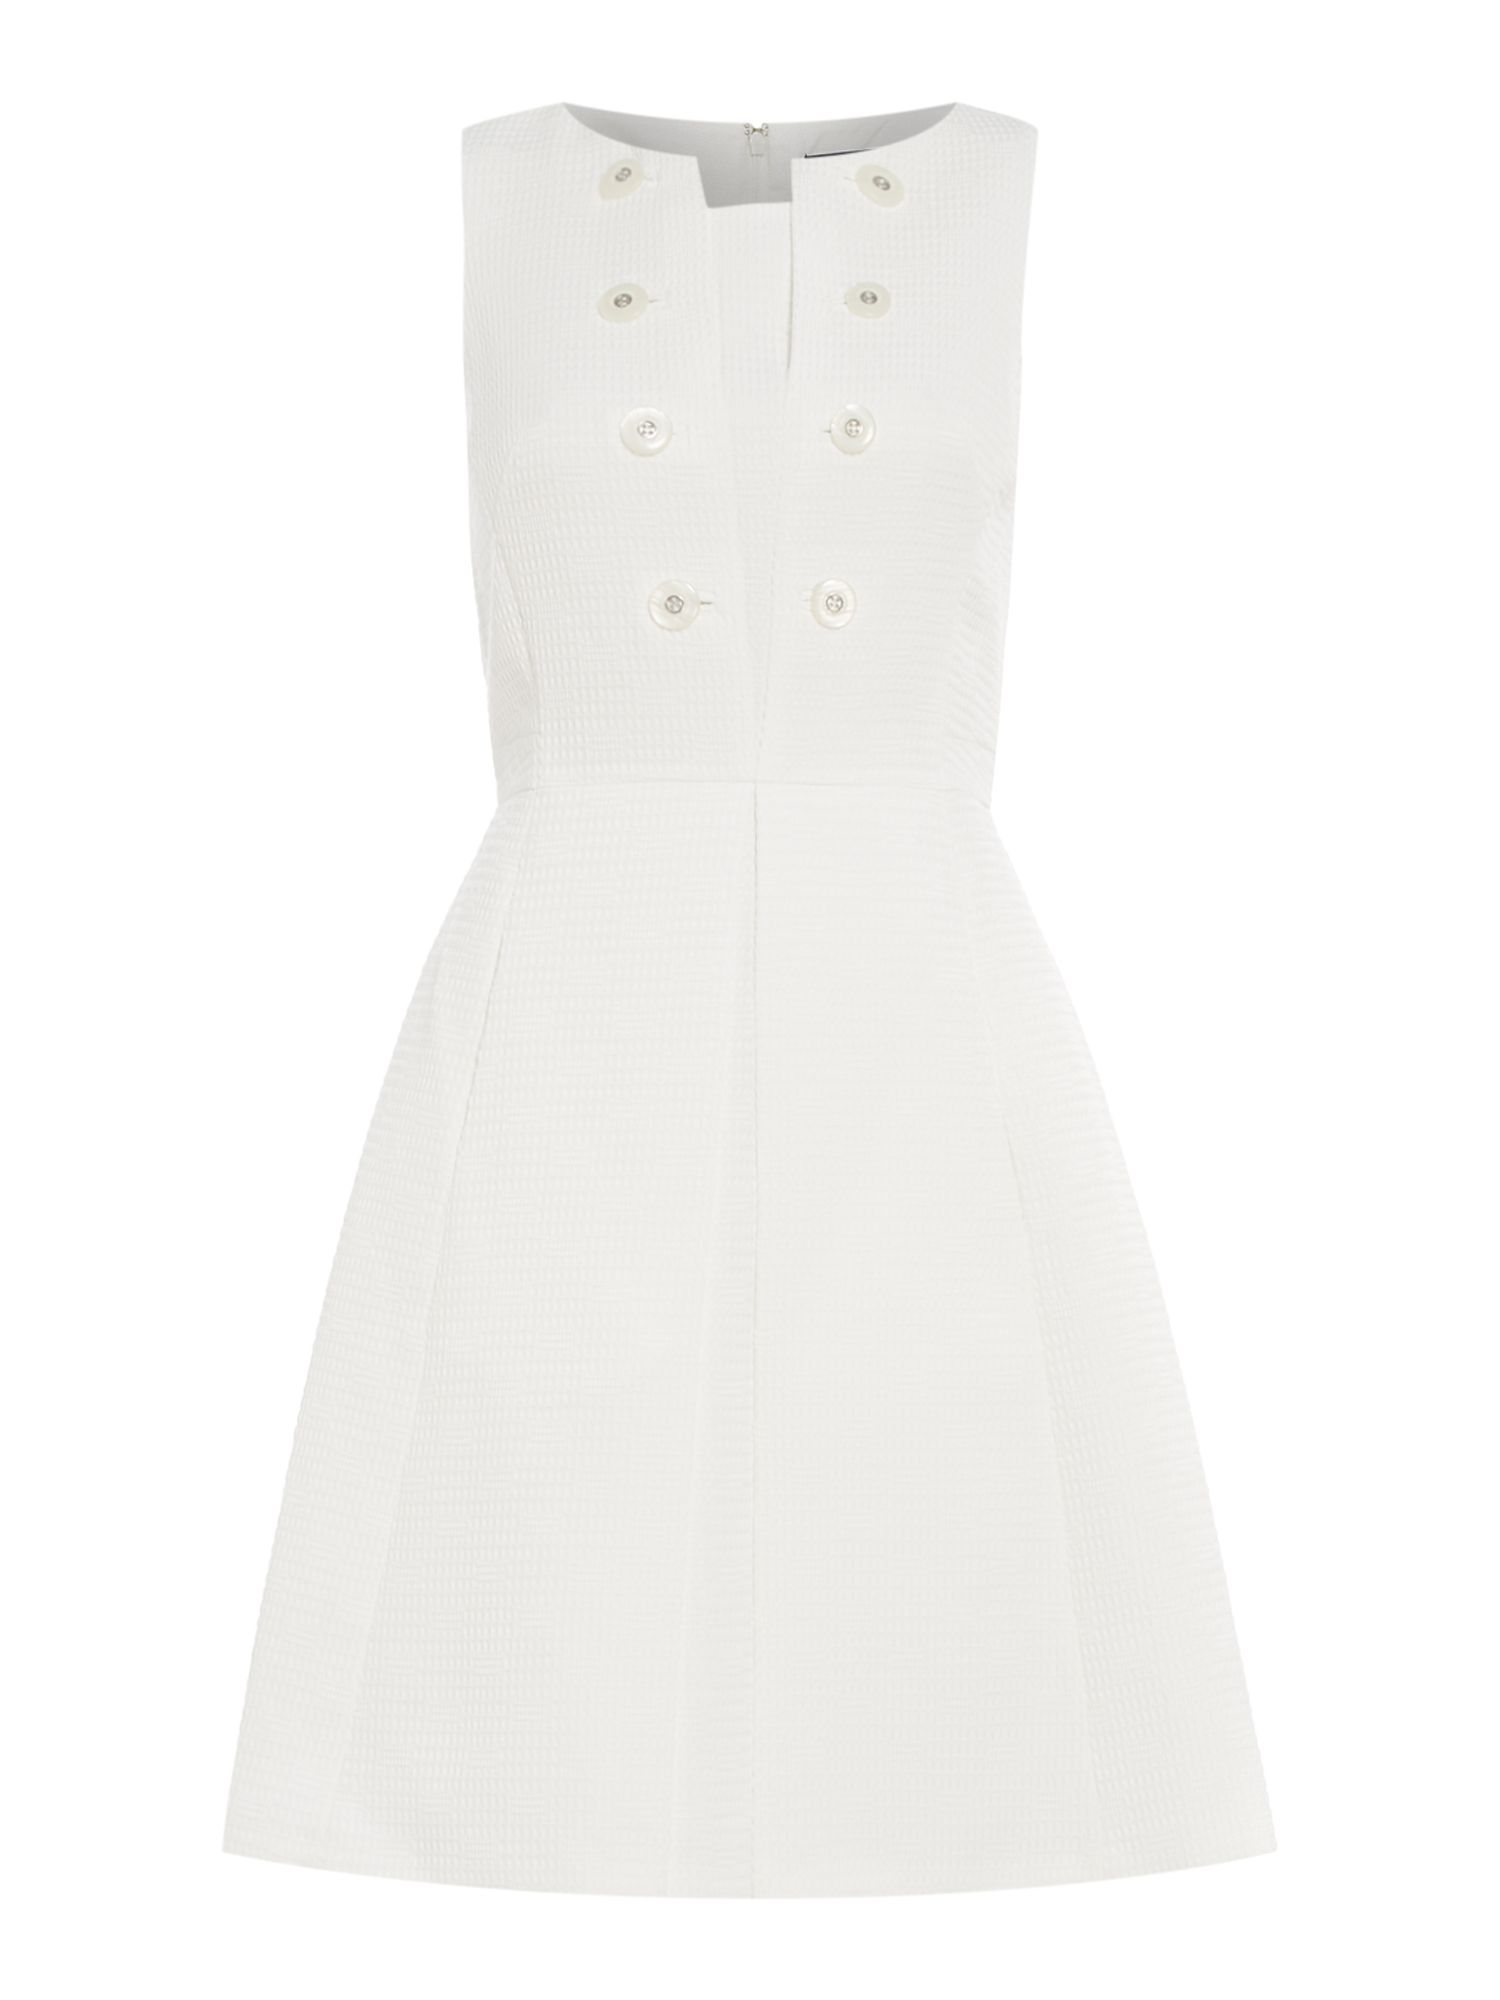 Tahari ASL White Fit And Flare Dress, White